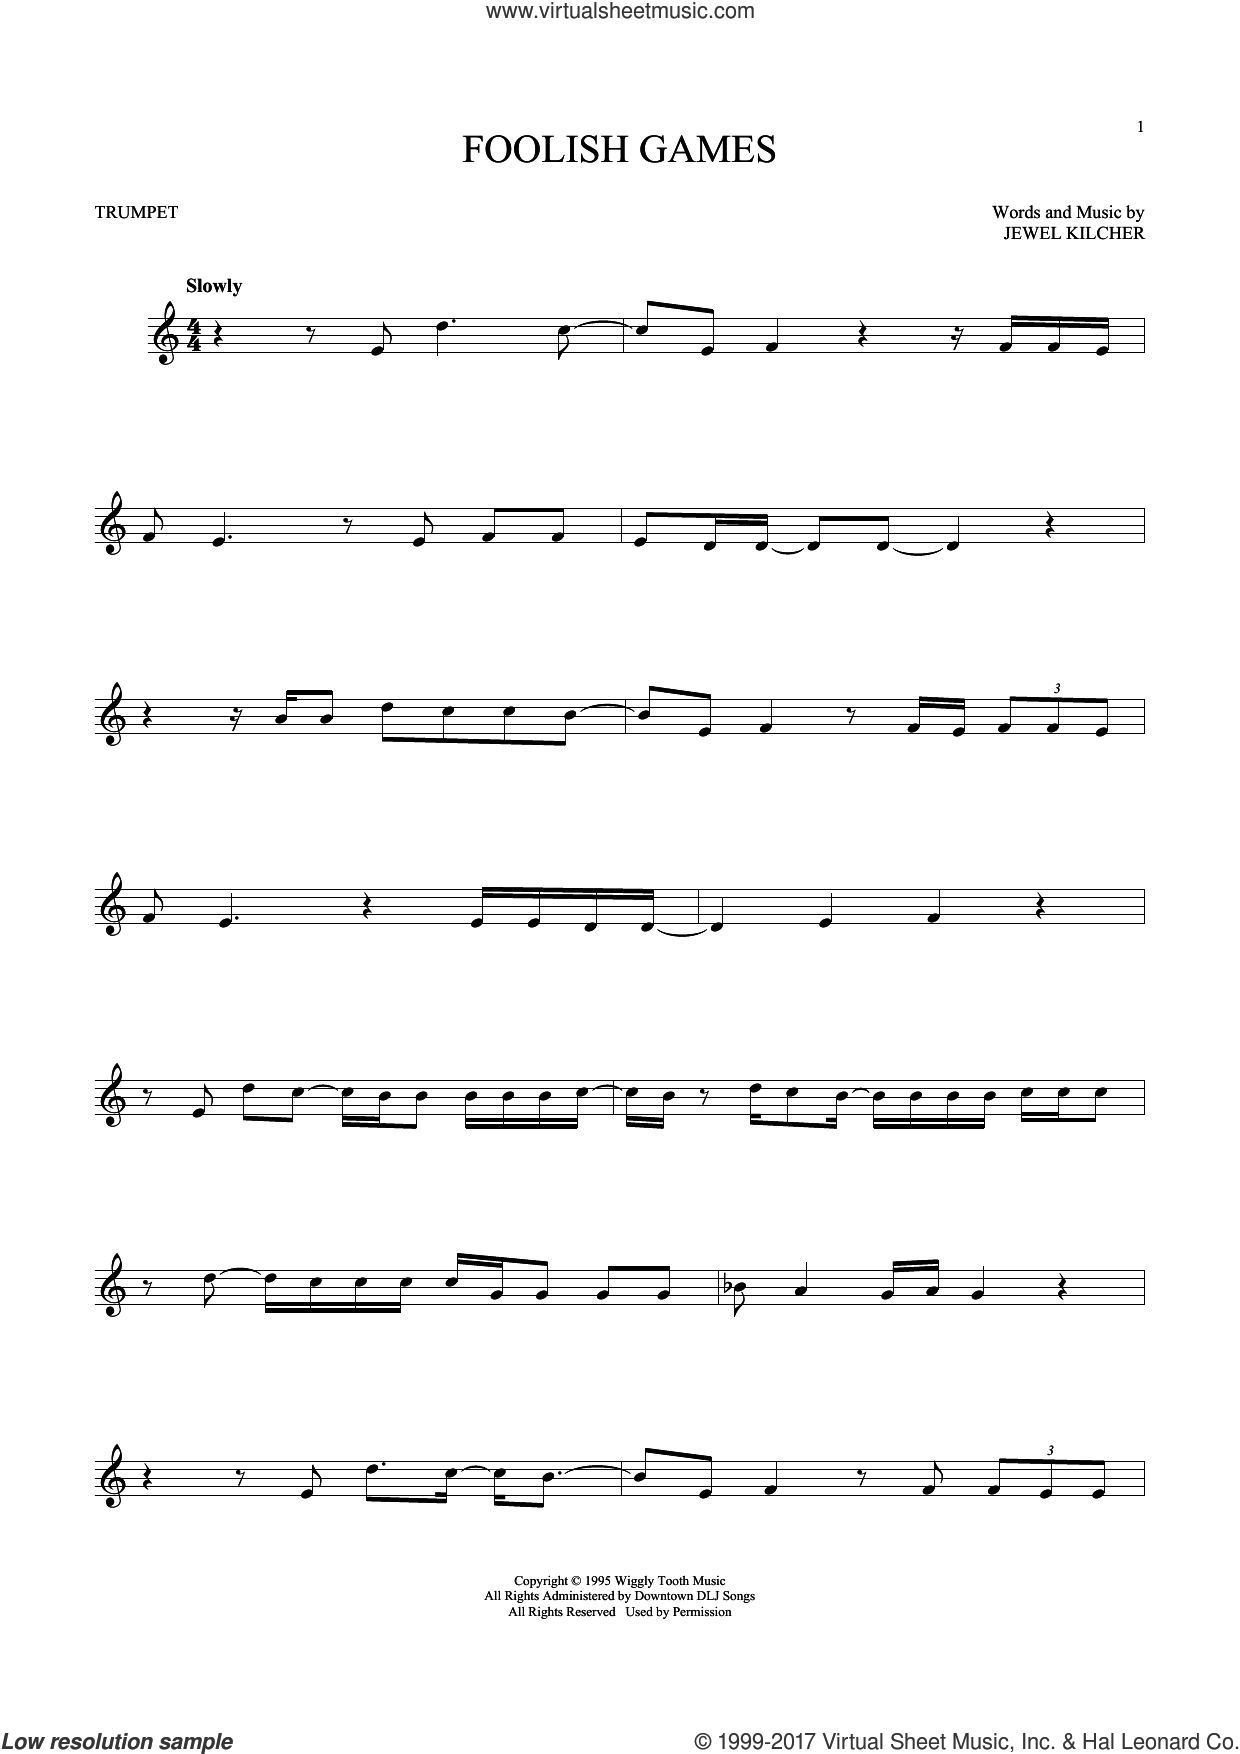 Foolish Games sheet music for trumpet solo by Jewel and Jewel Kilcher, intermediate